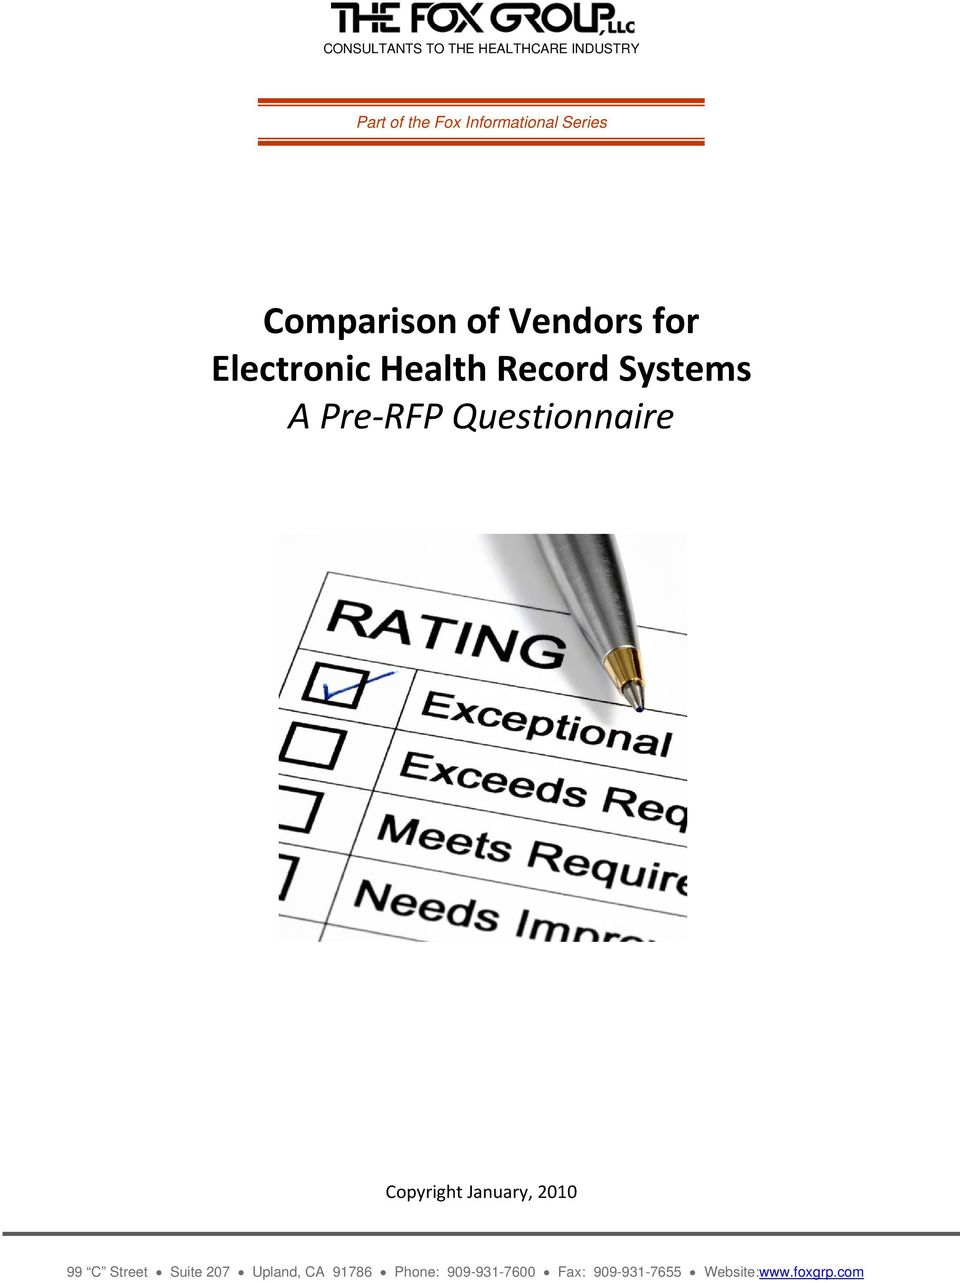 Comparison of Vendors for Electronic Health Record Systems A